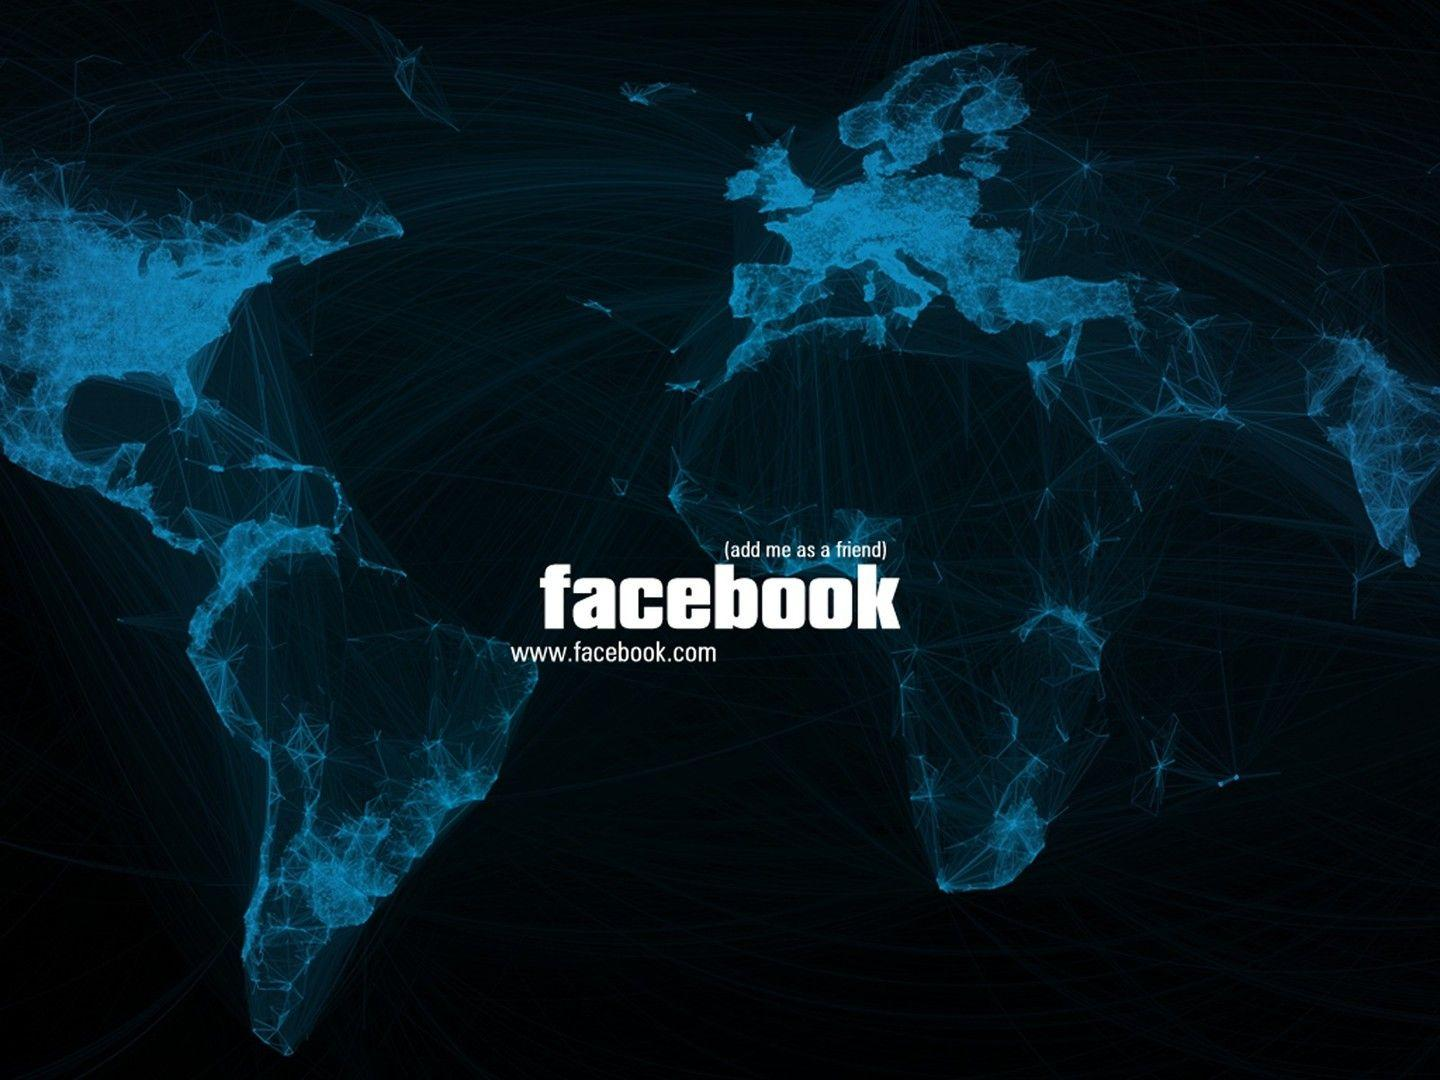 33 Facebook HD Wallpapers